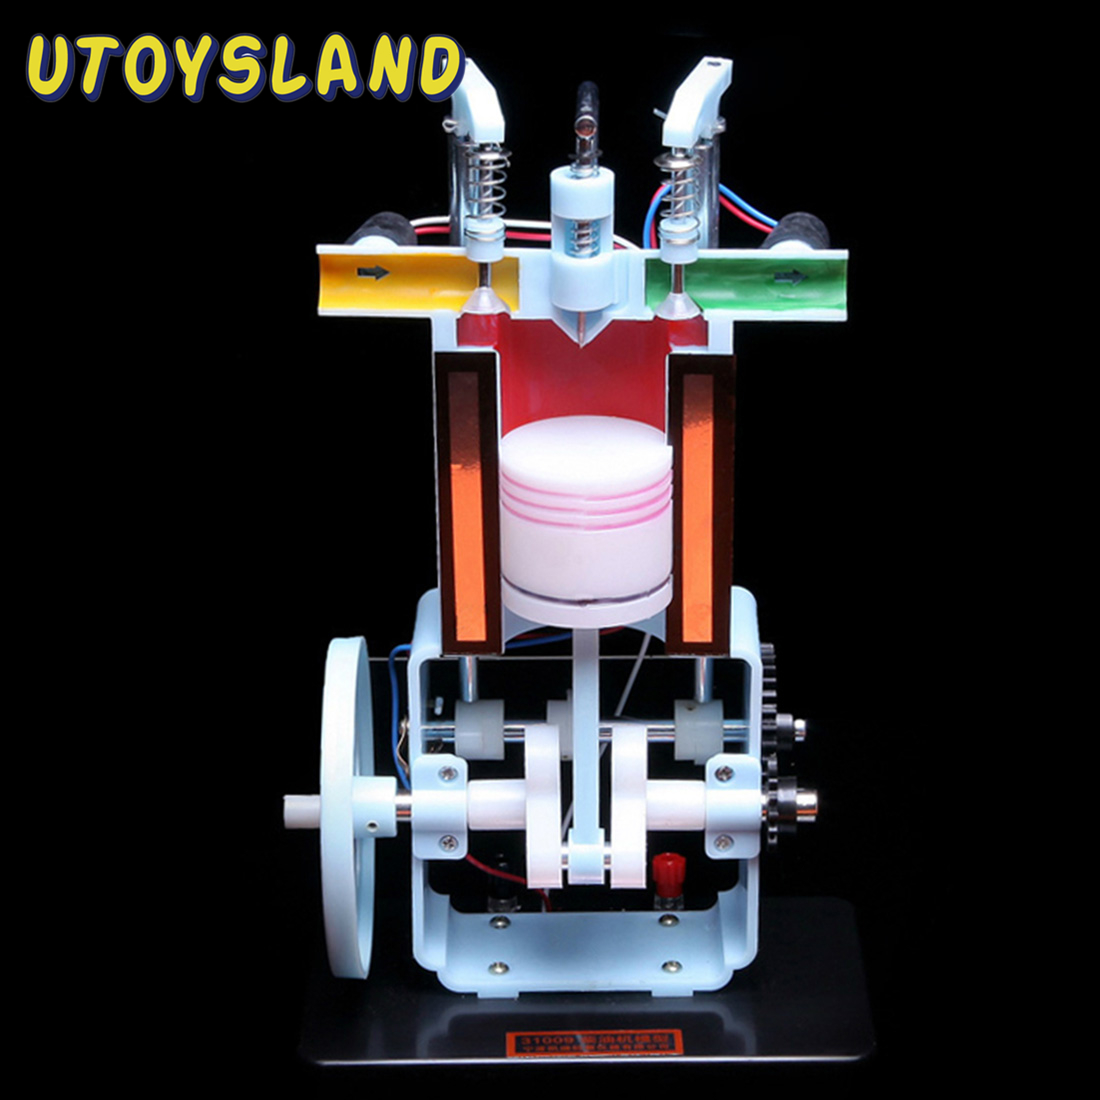 Hot Sale Diesel Engine Model Internal Combustion Engine Experimental Apparatus For Physics Education Early Learning Toy For Kids